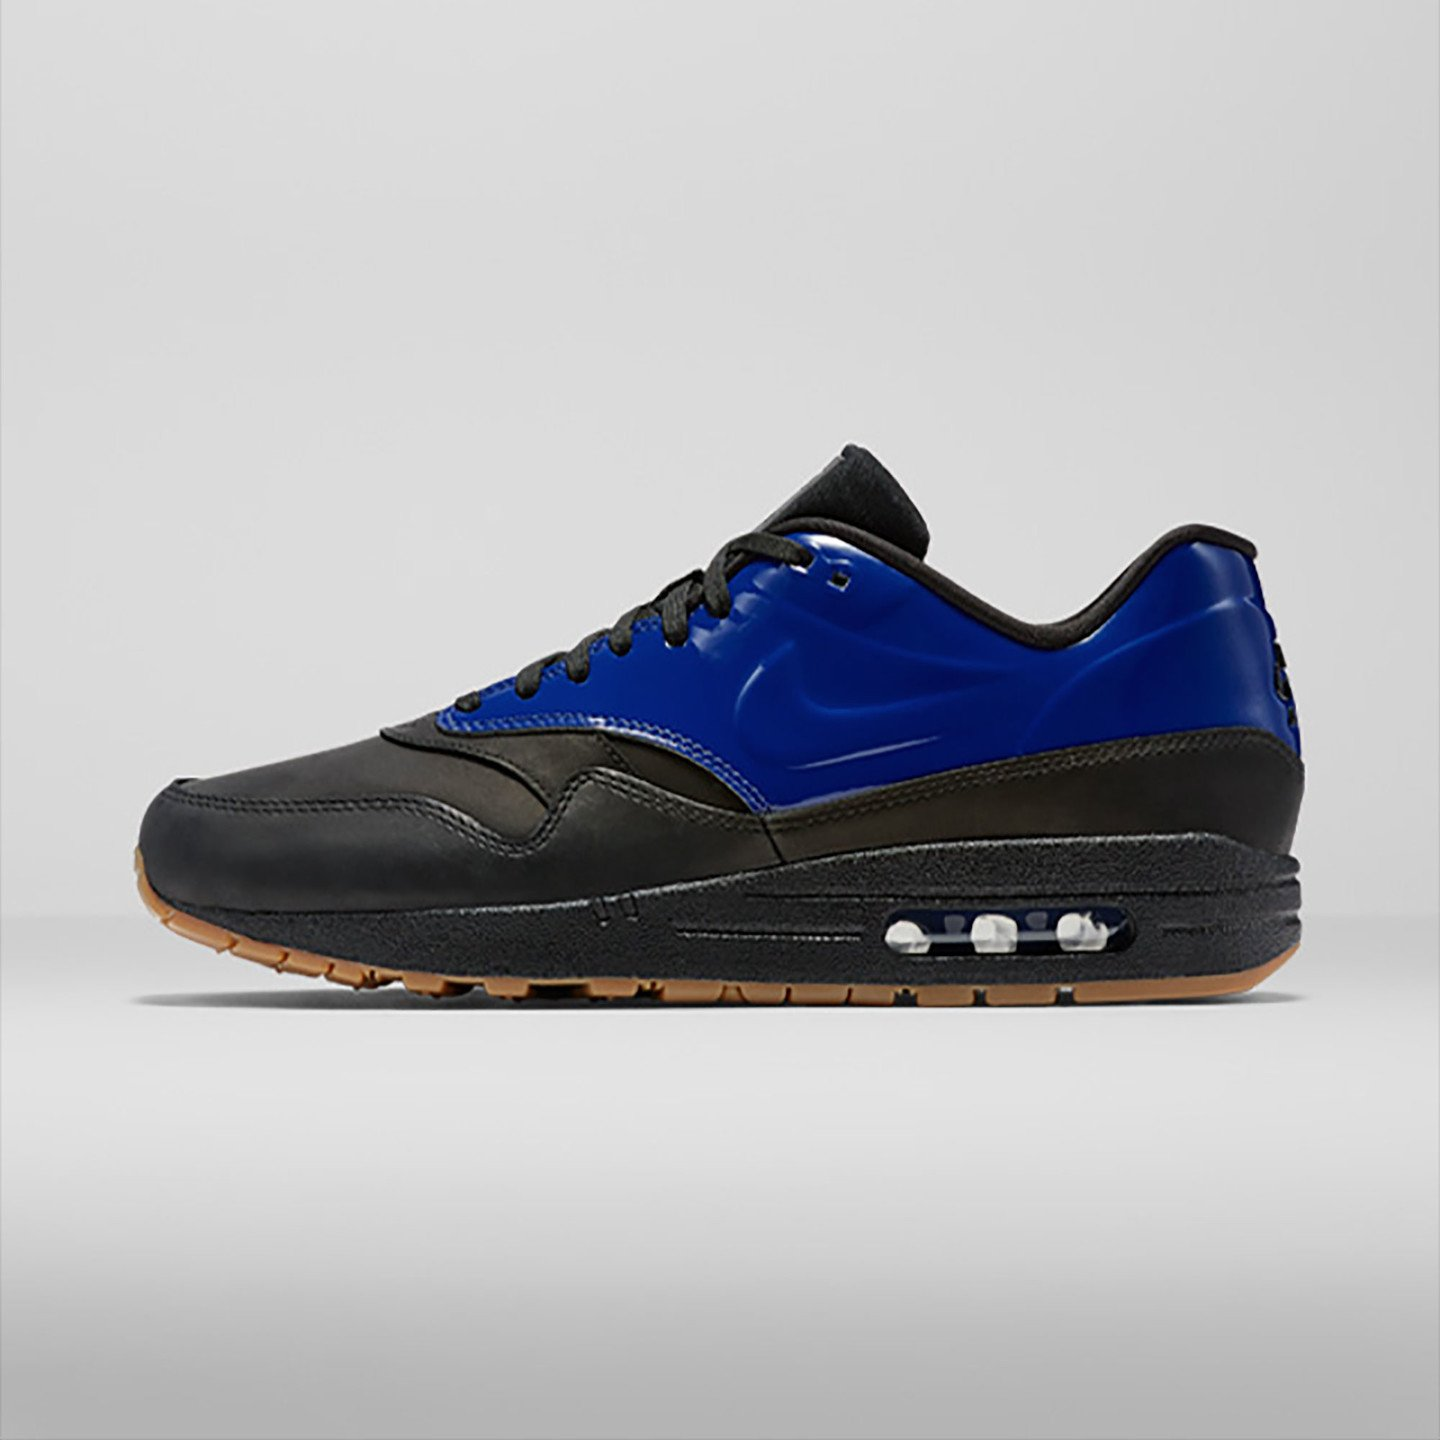 Nike Air Max 1 Vac Tech QS Deep Royal Blue / Black 831113-400-40